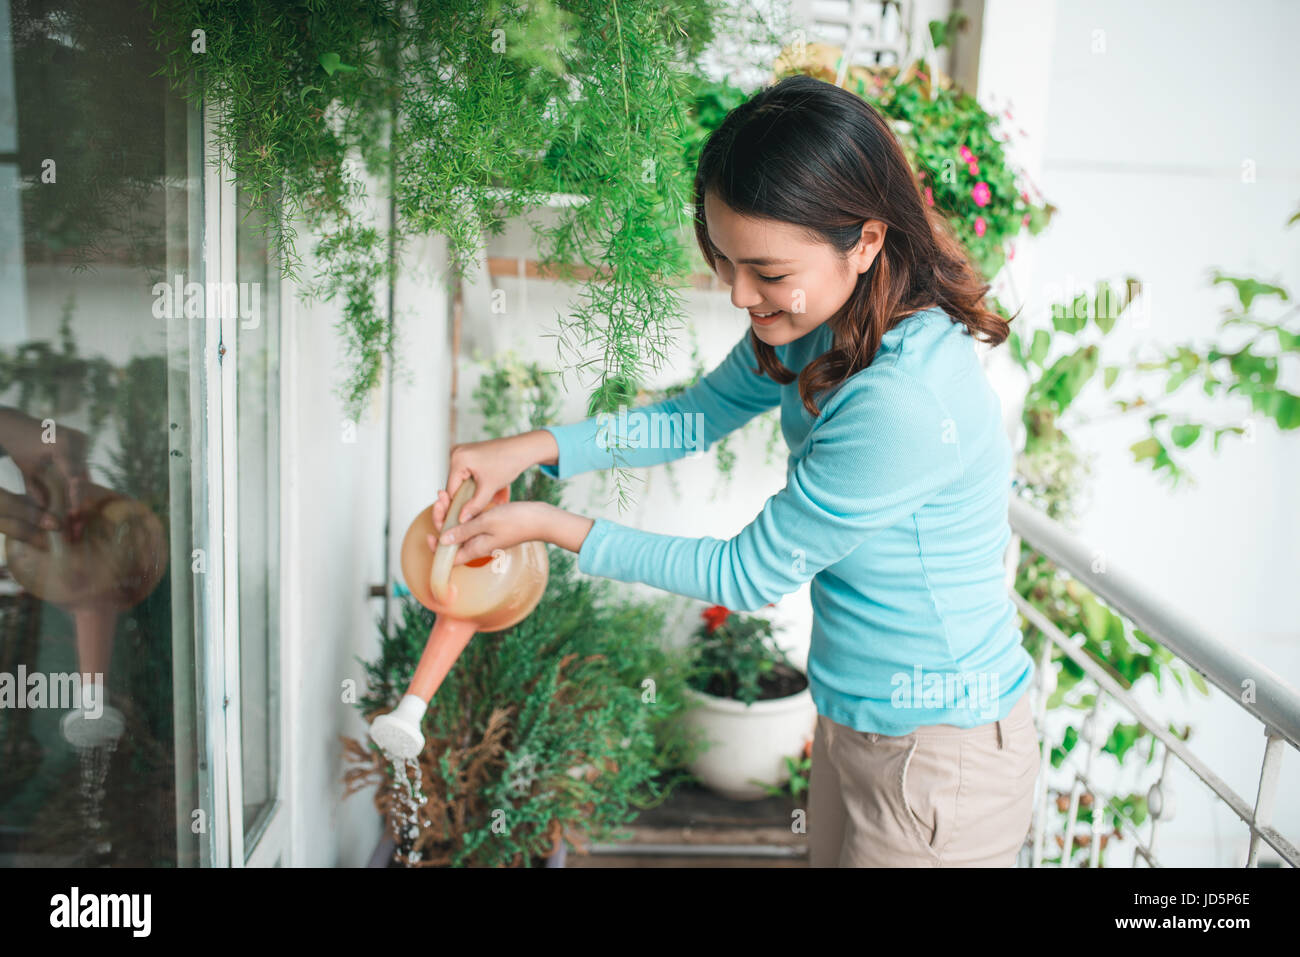 Woman wtering plant in container on balcony garden - Stock Image